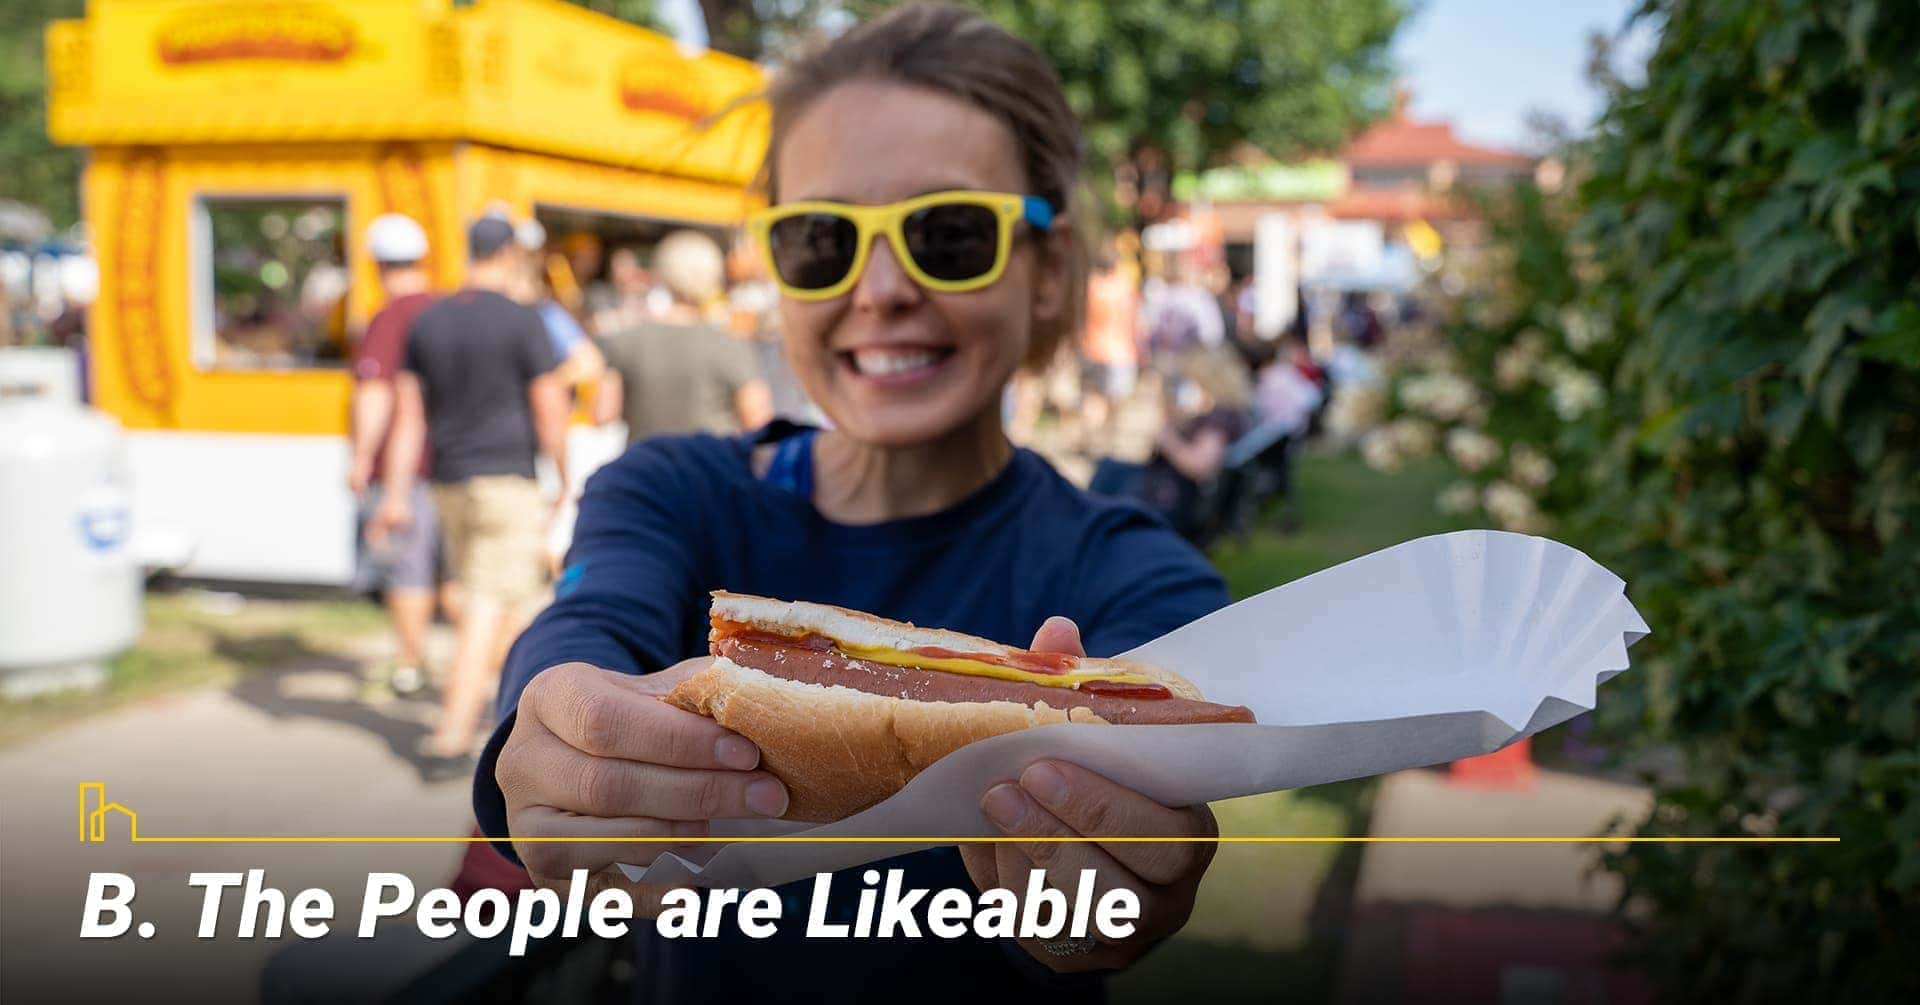 The People are Likeable